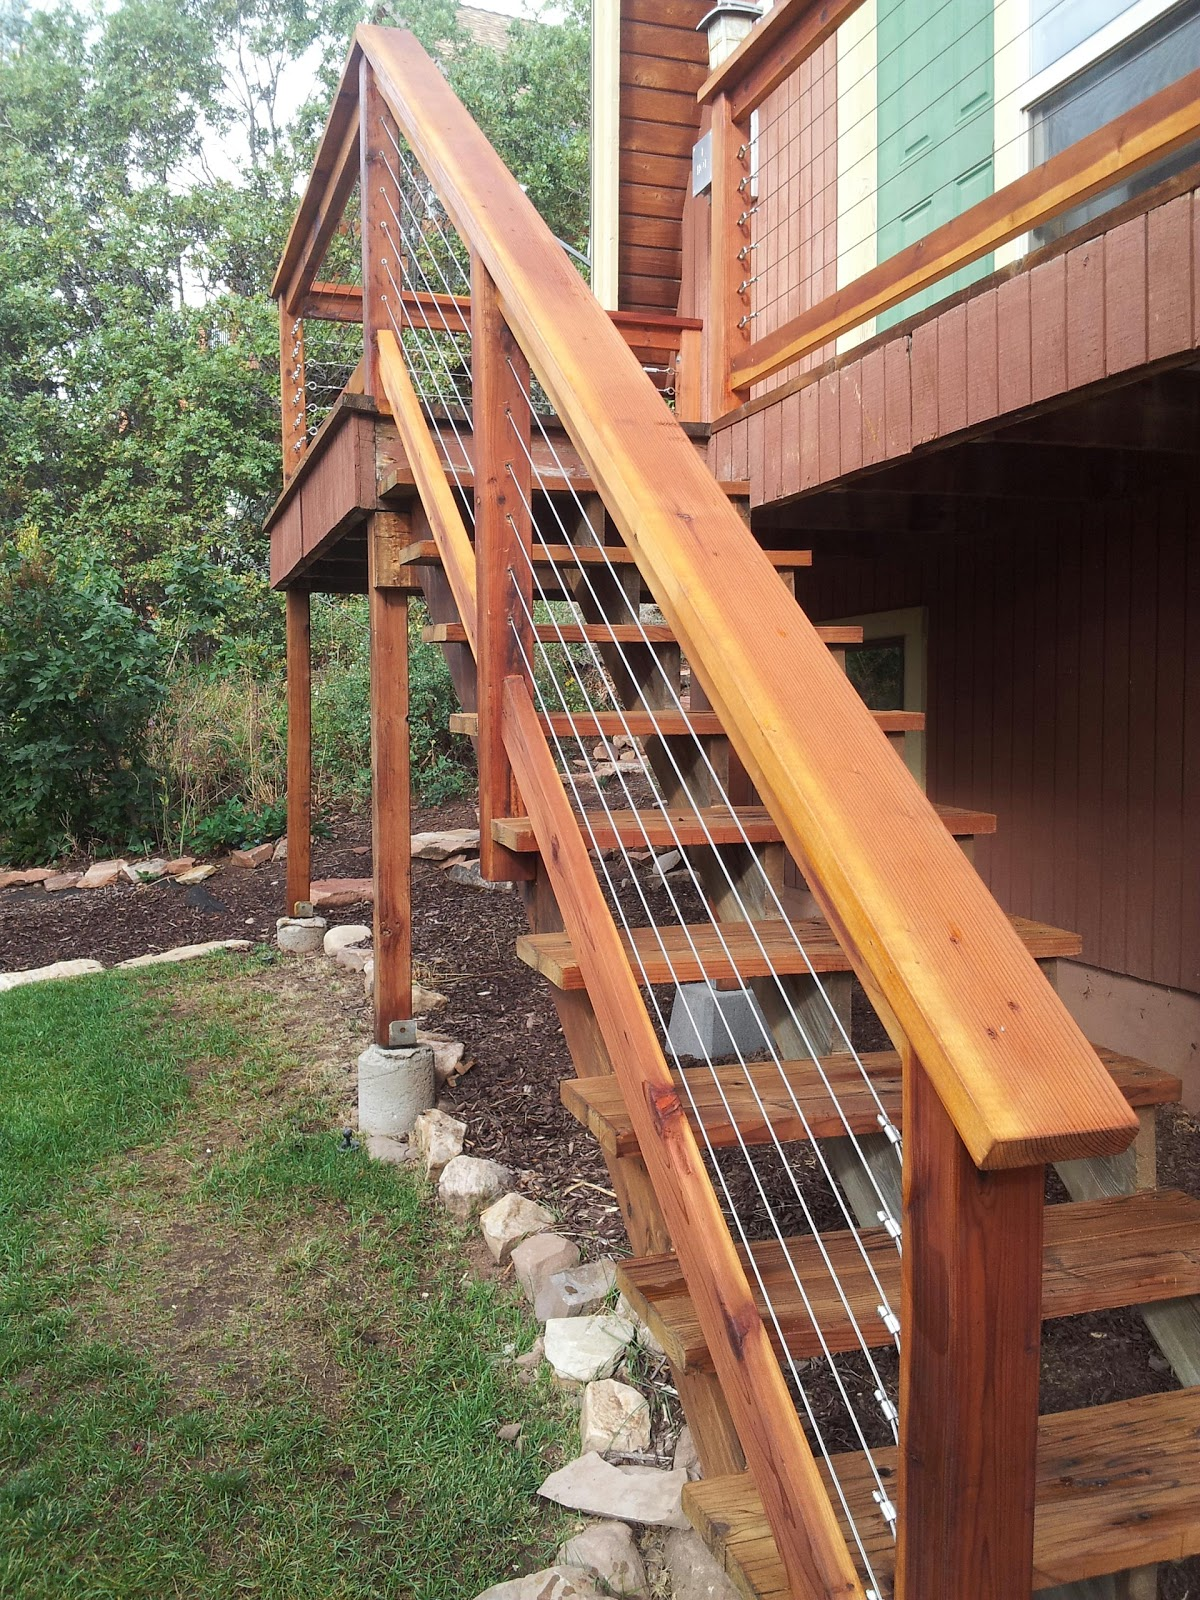 Park City Wood and Deck, Stylists: Cable railing